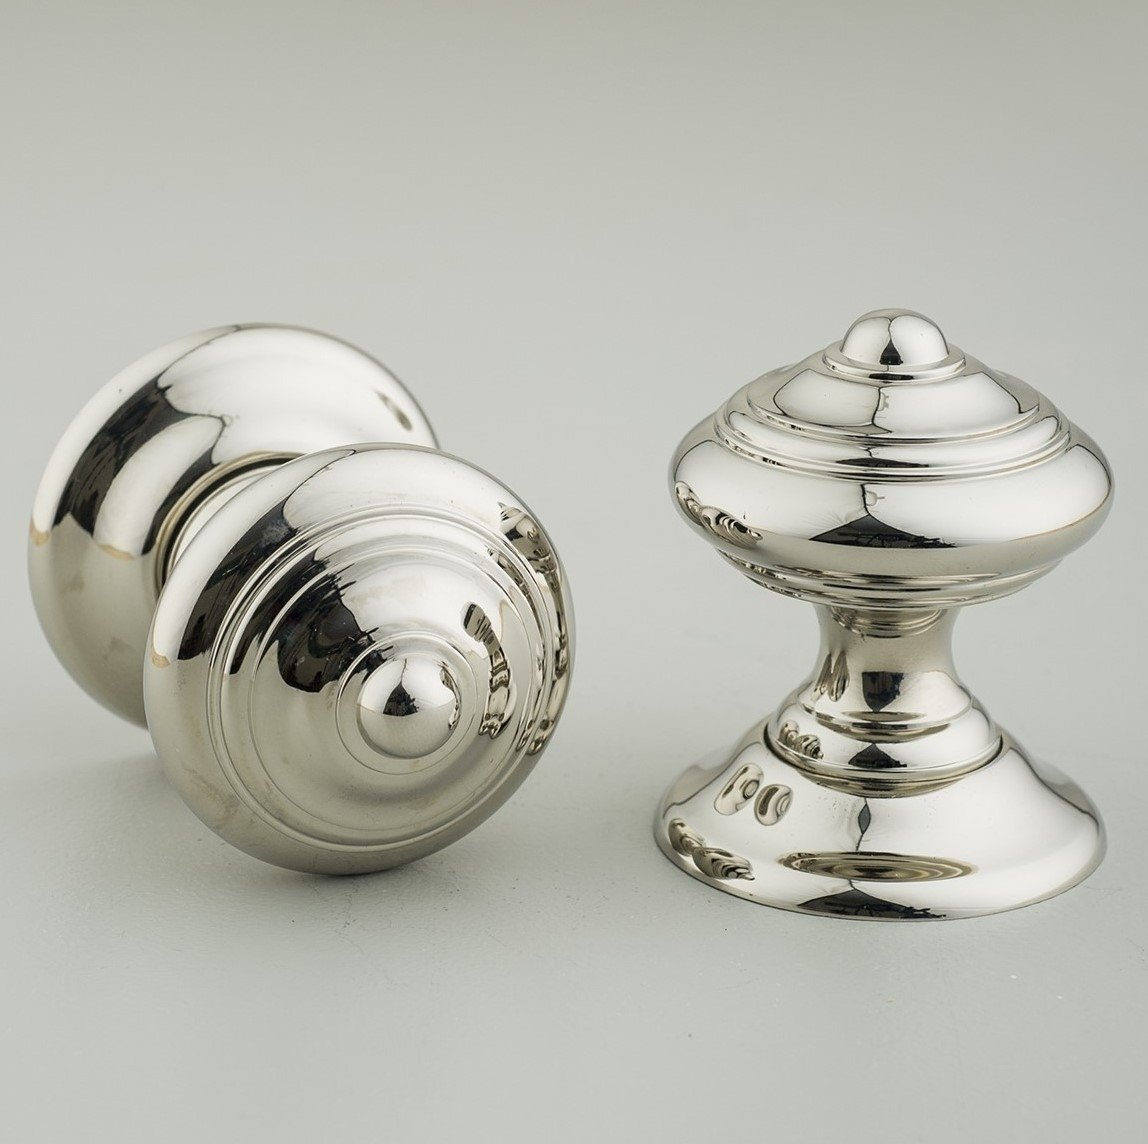 Regency-Style  Concealed Screw Door Knobs (Pair) - Nickel